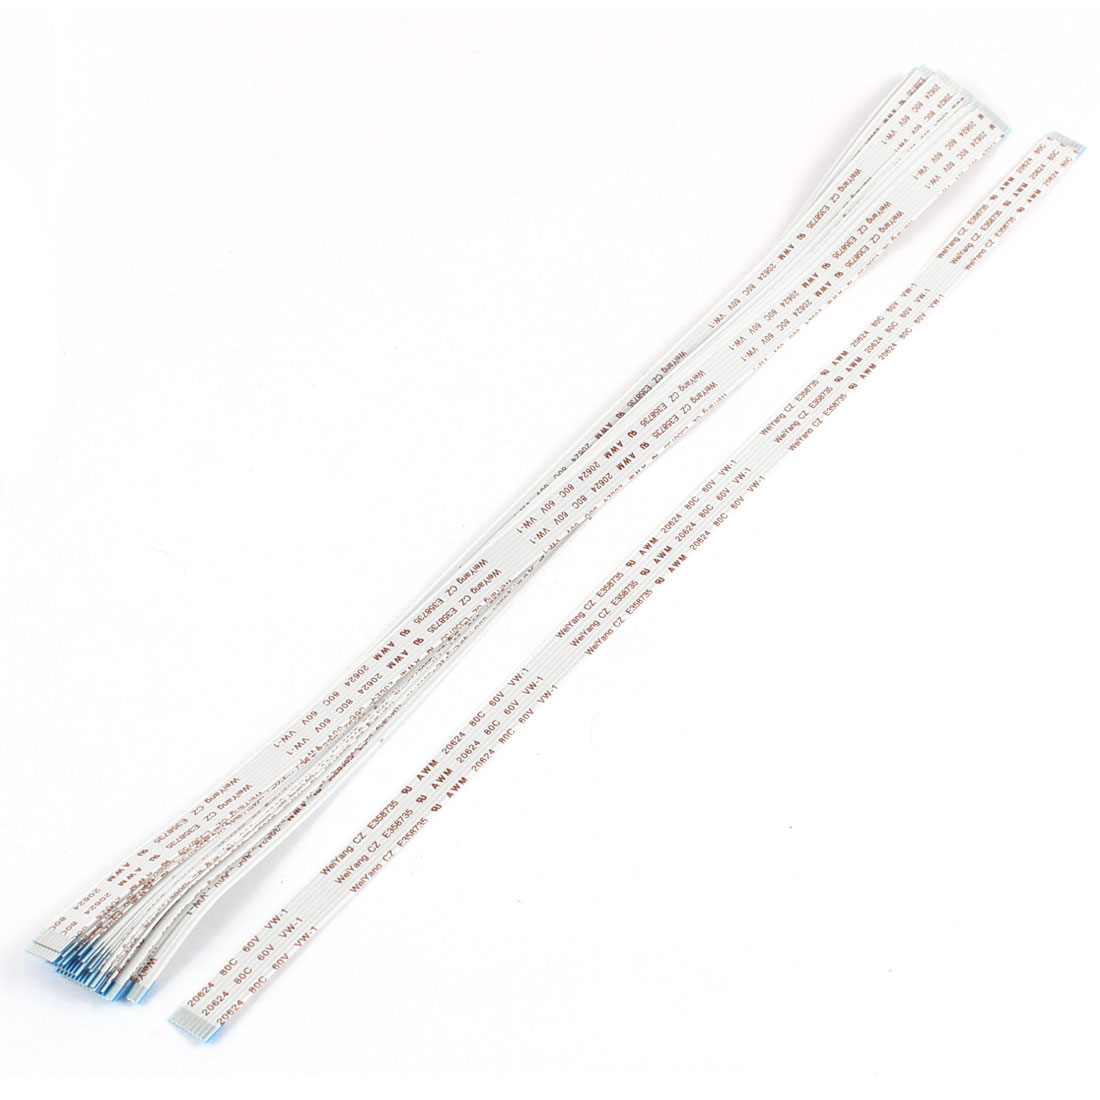 20Pcs 1.0mm Pitch 8 Pin 20624 80C 60V Flexible Flat Cable FFC FPC 300mm